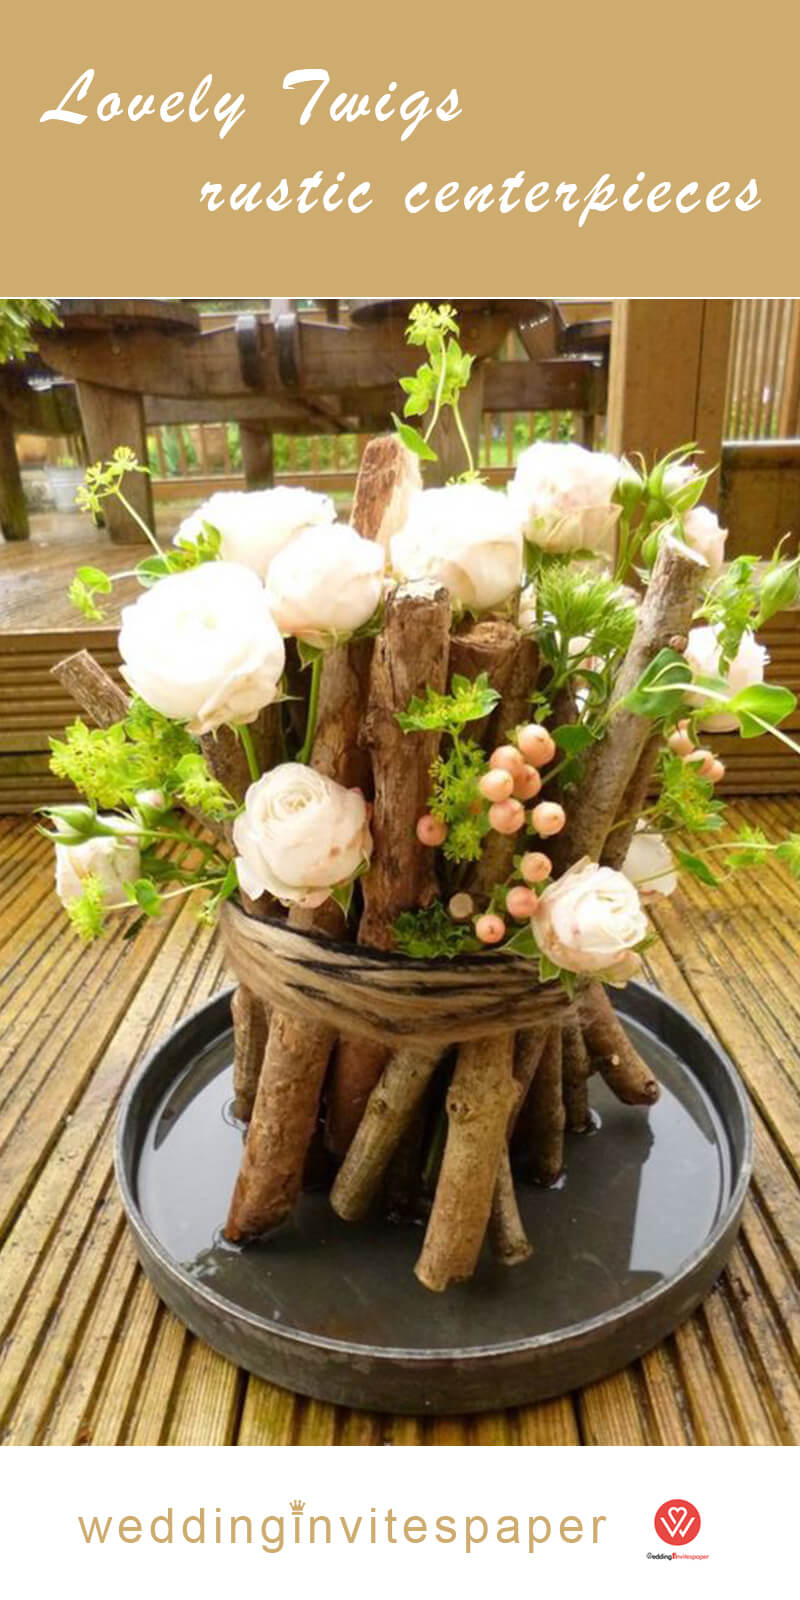 8 Lovely Twigs rustic centerpieces.jpg